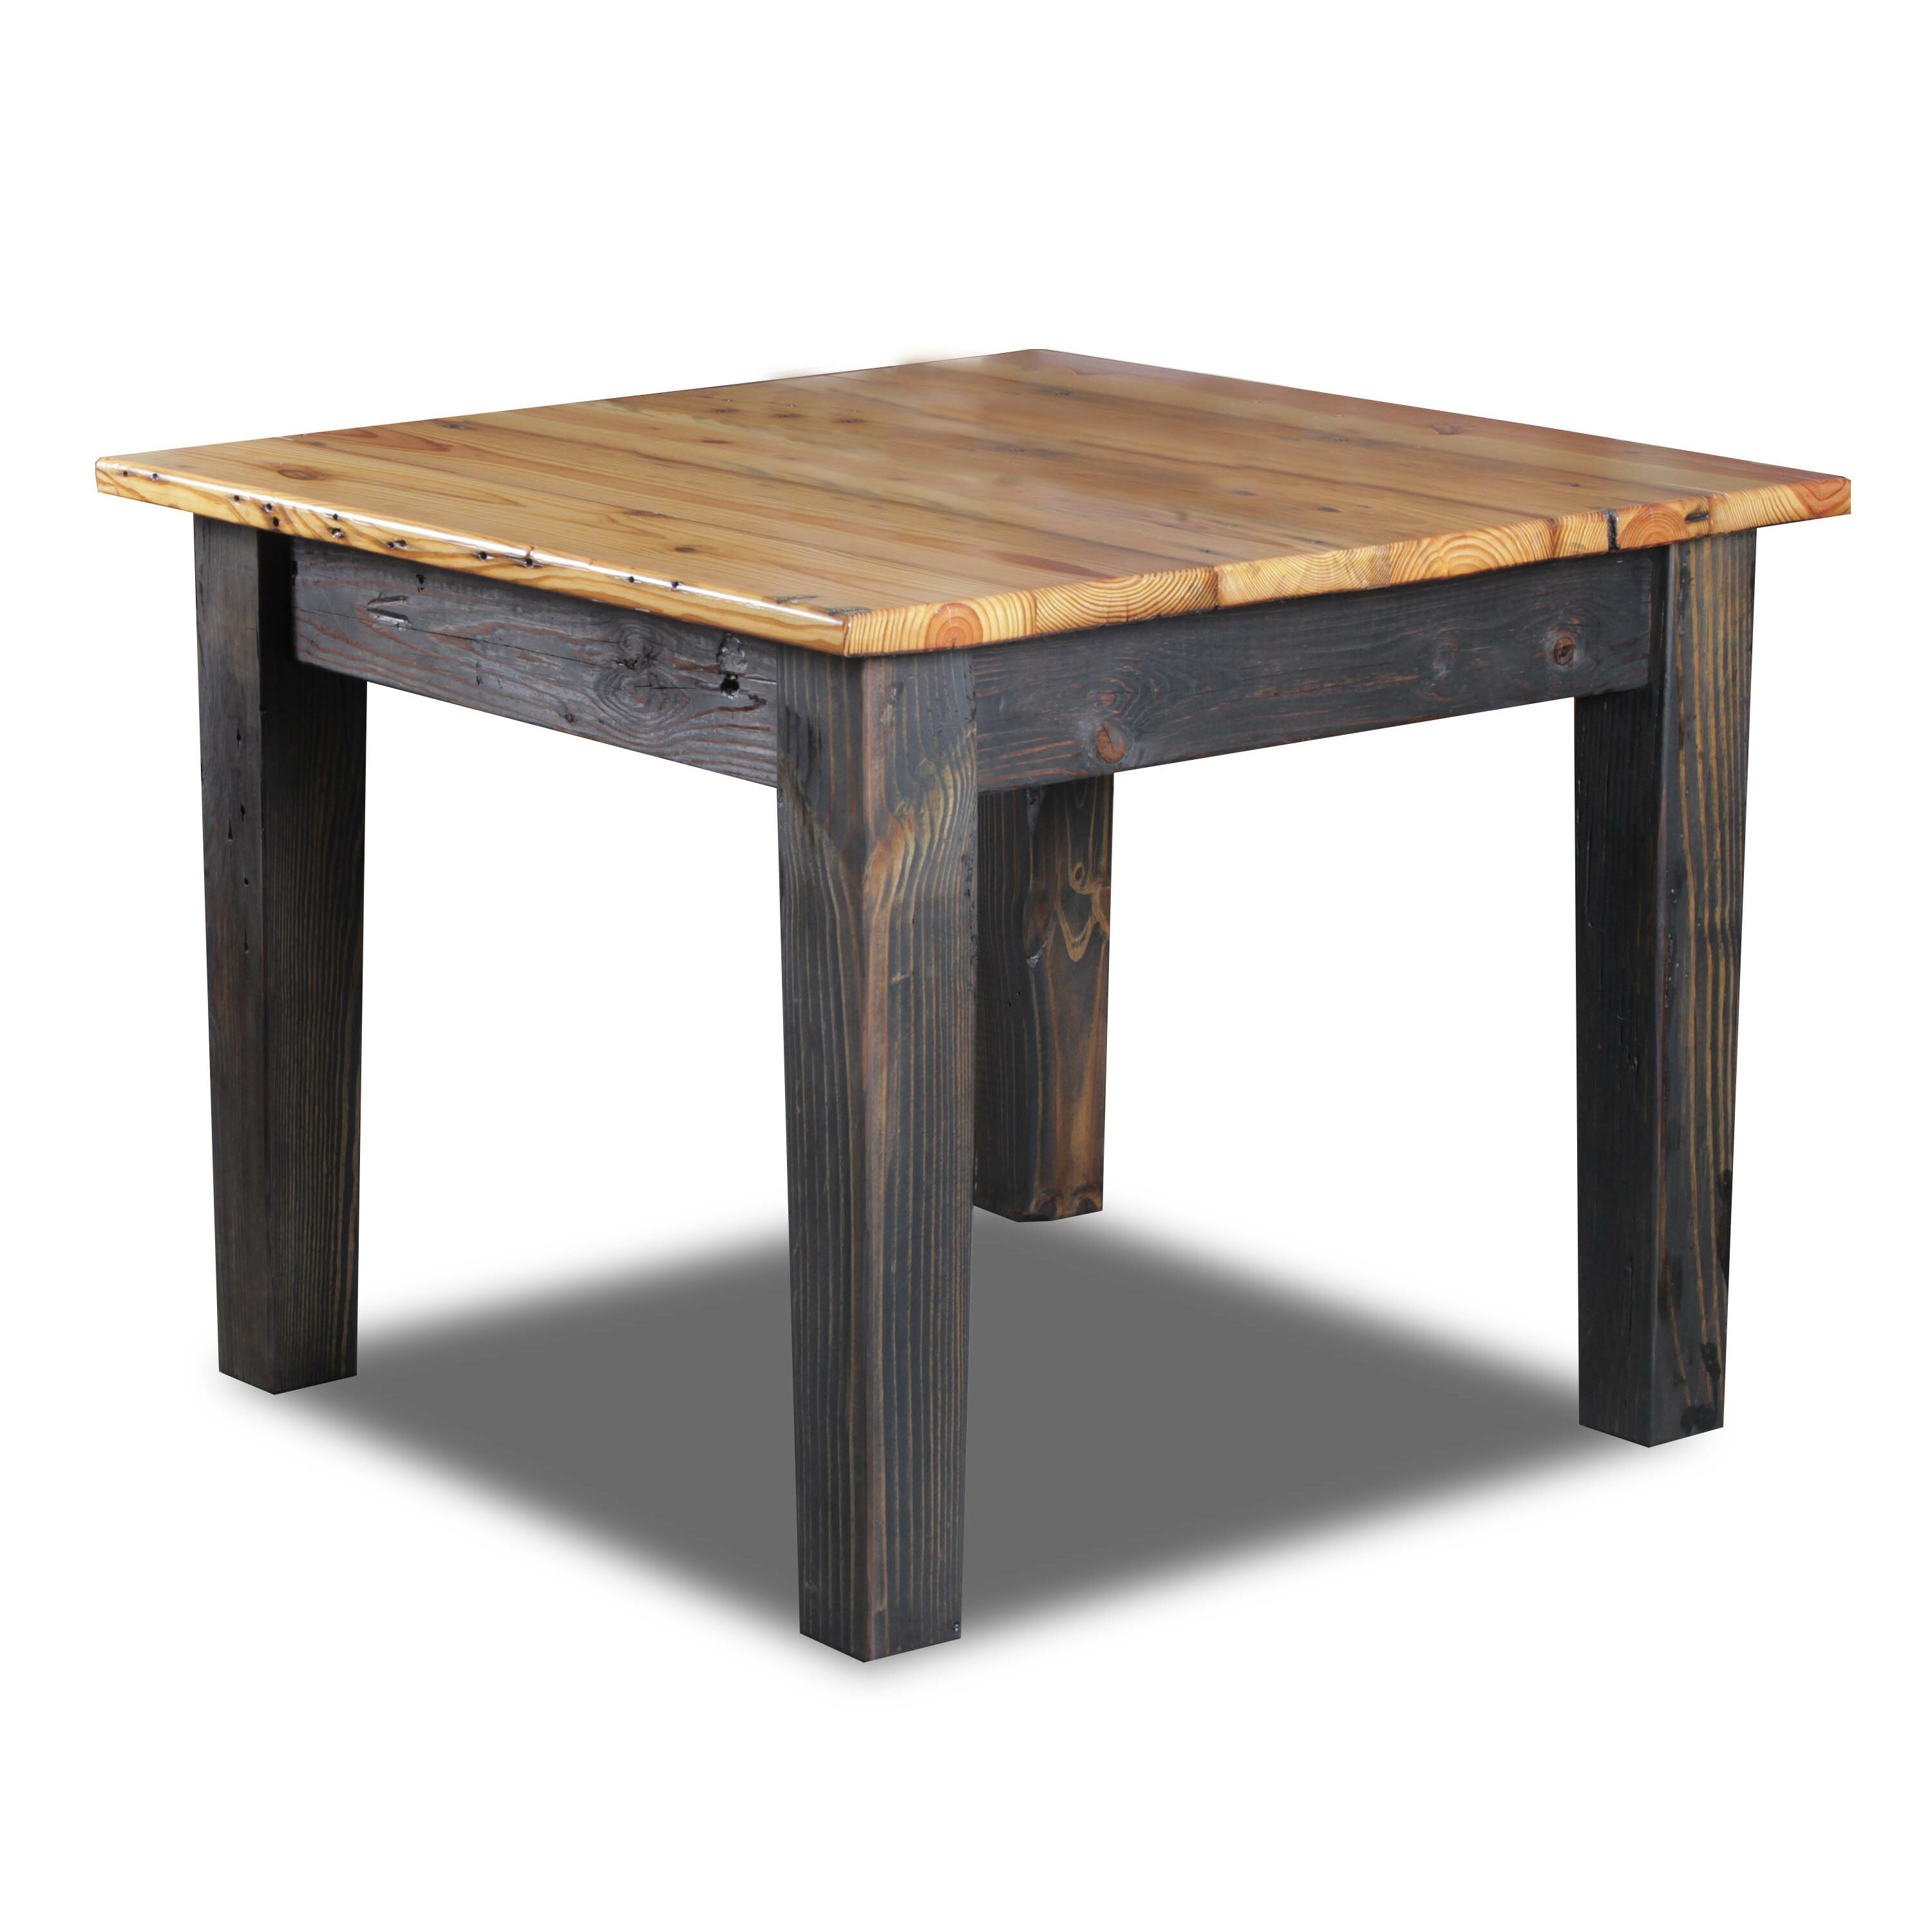 Vintage Flooring and Furniture Farm Dining Table & Reviews